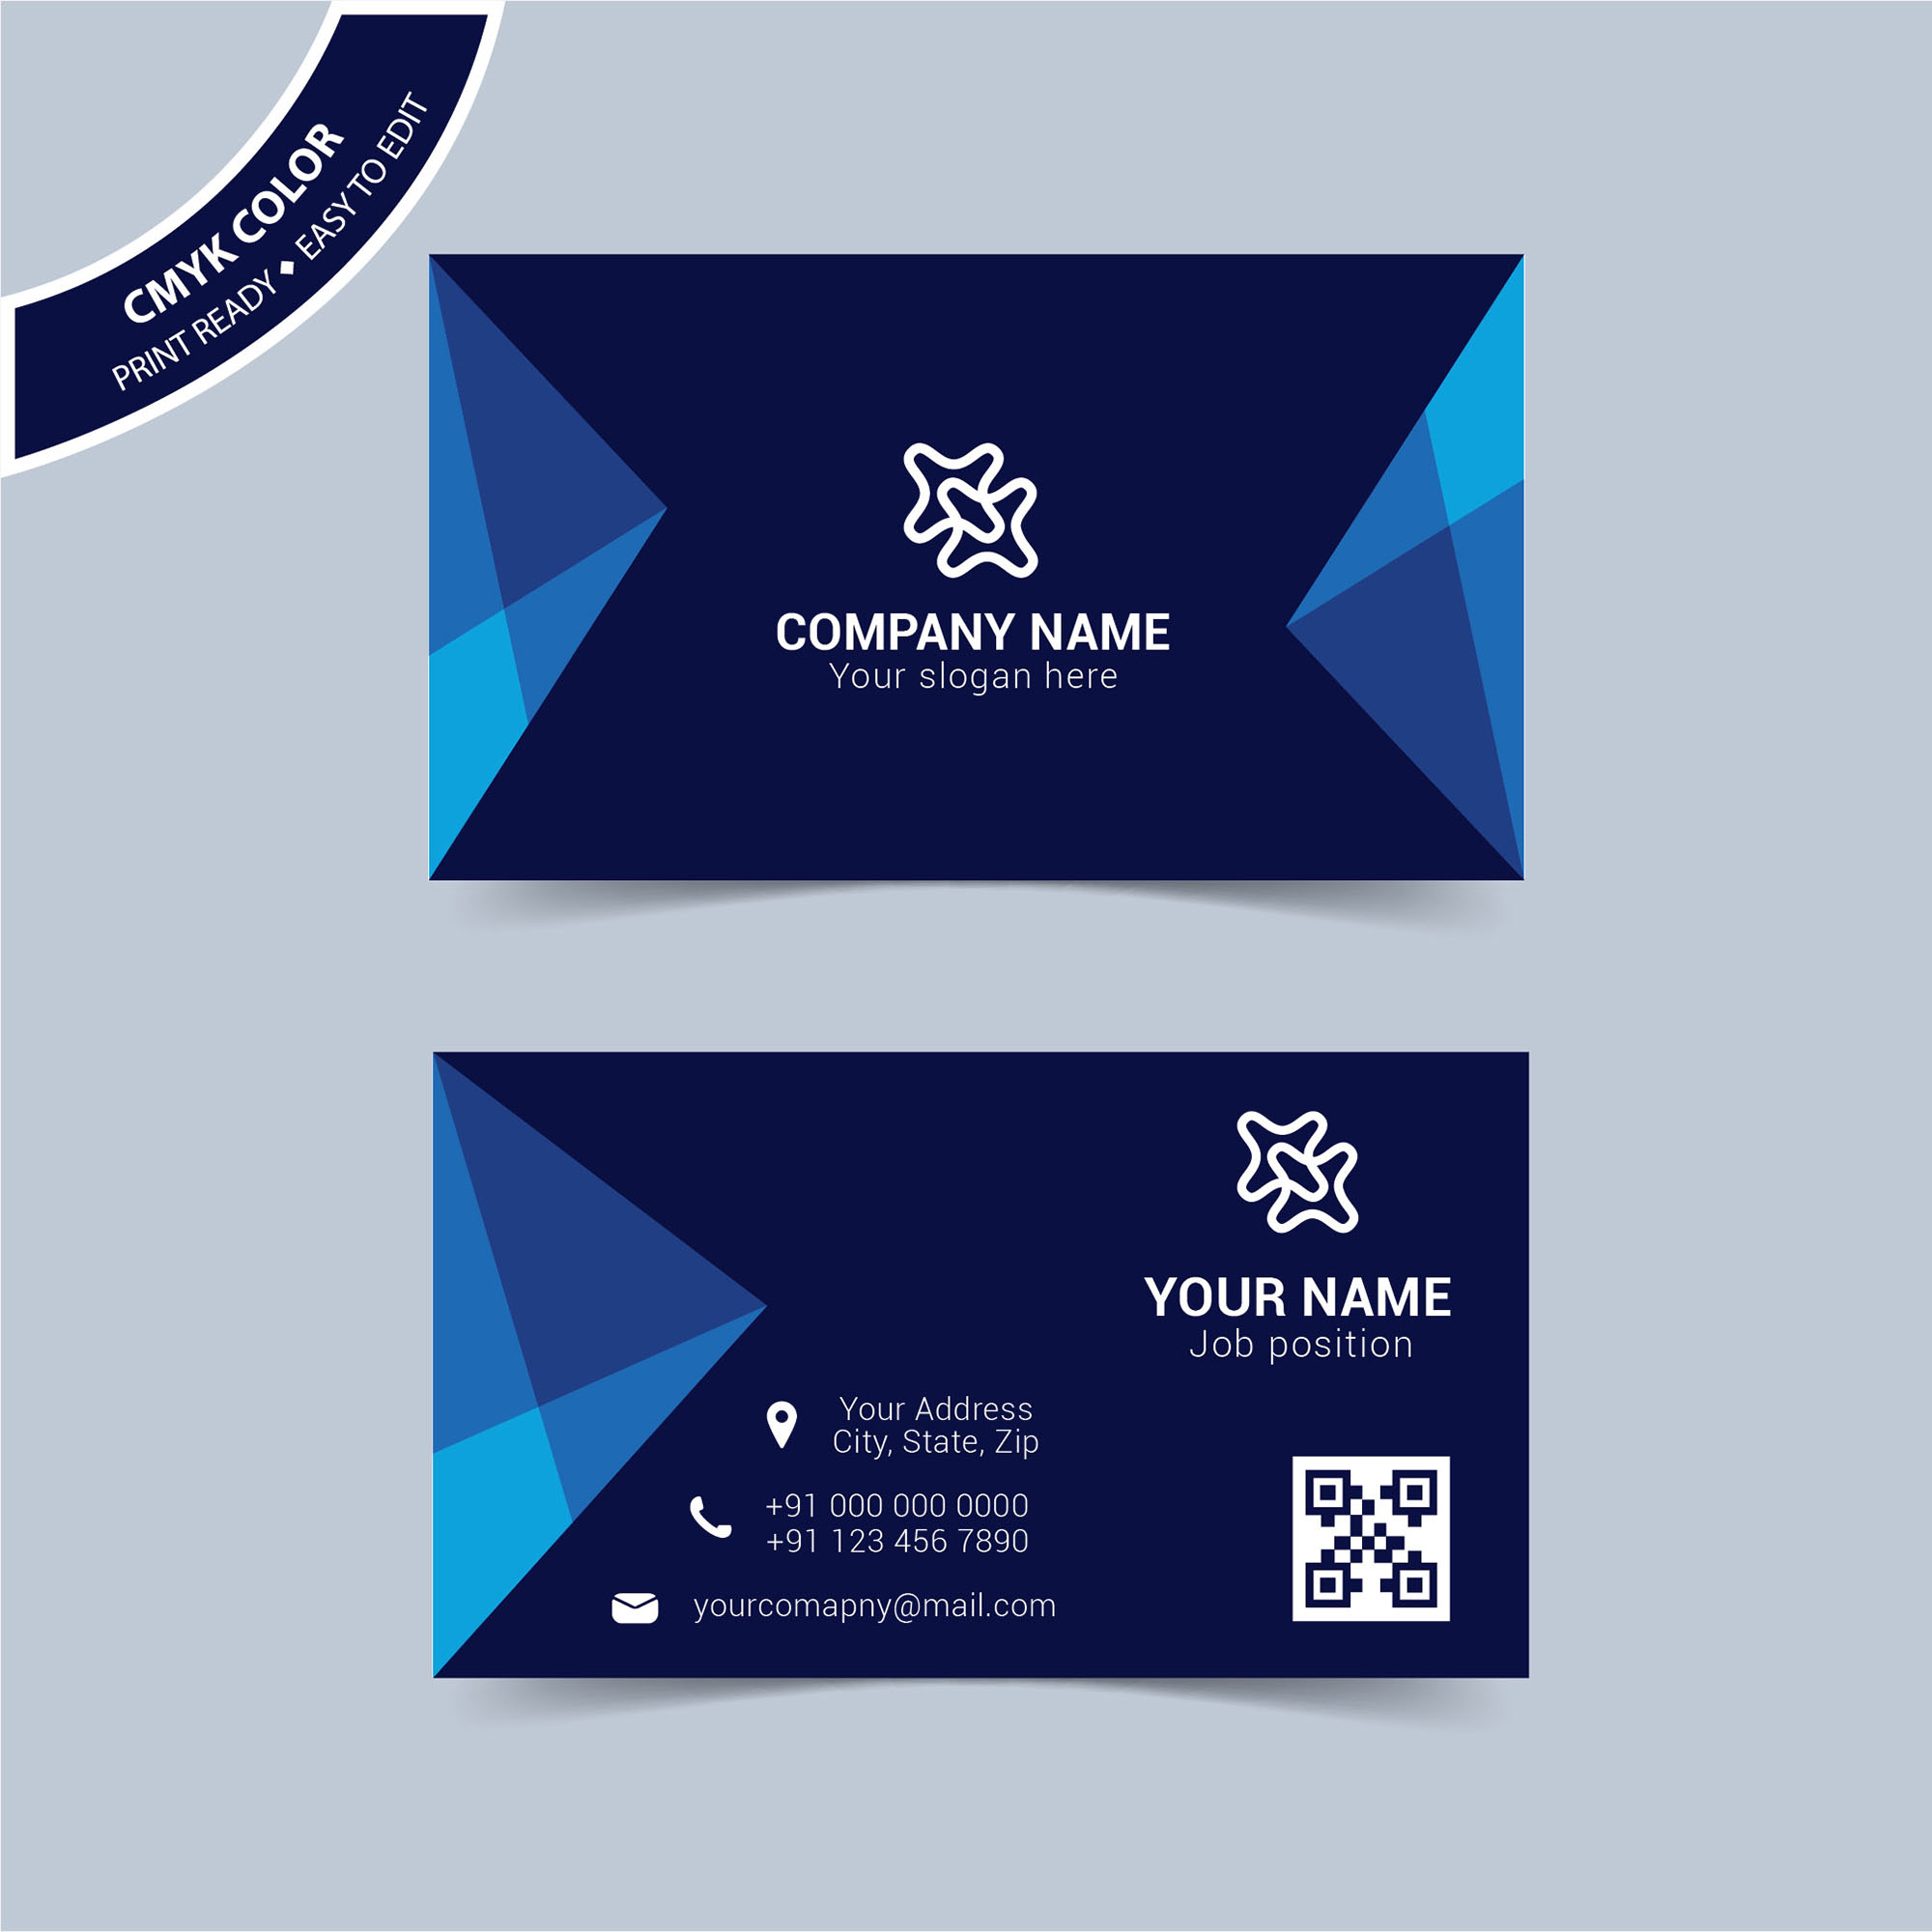 Modern blue business card template free download wisxi business card business cards business card design business card template design templates fbccfo